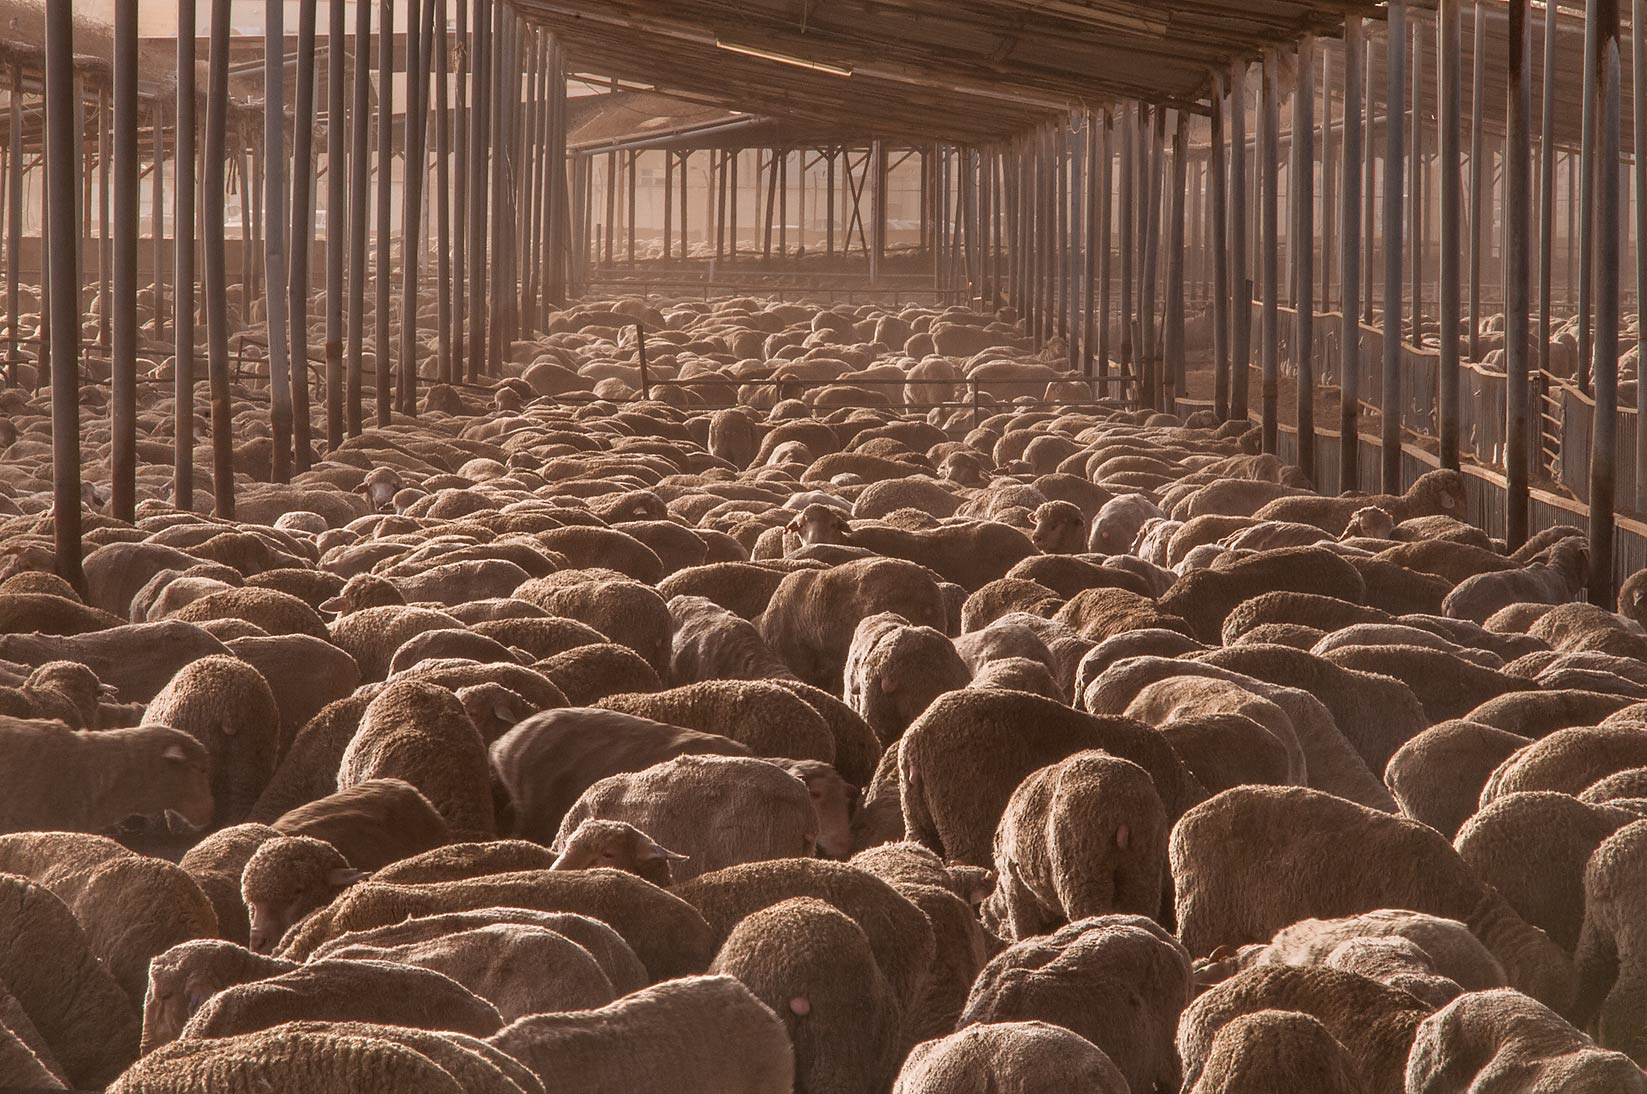 Australian sheep crammed into a dusty feedlot of...in Abu Hamour. Doha, Qatar